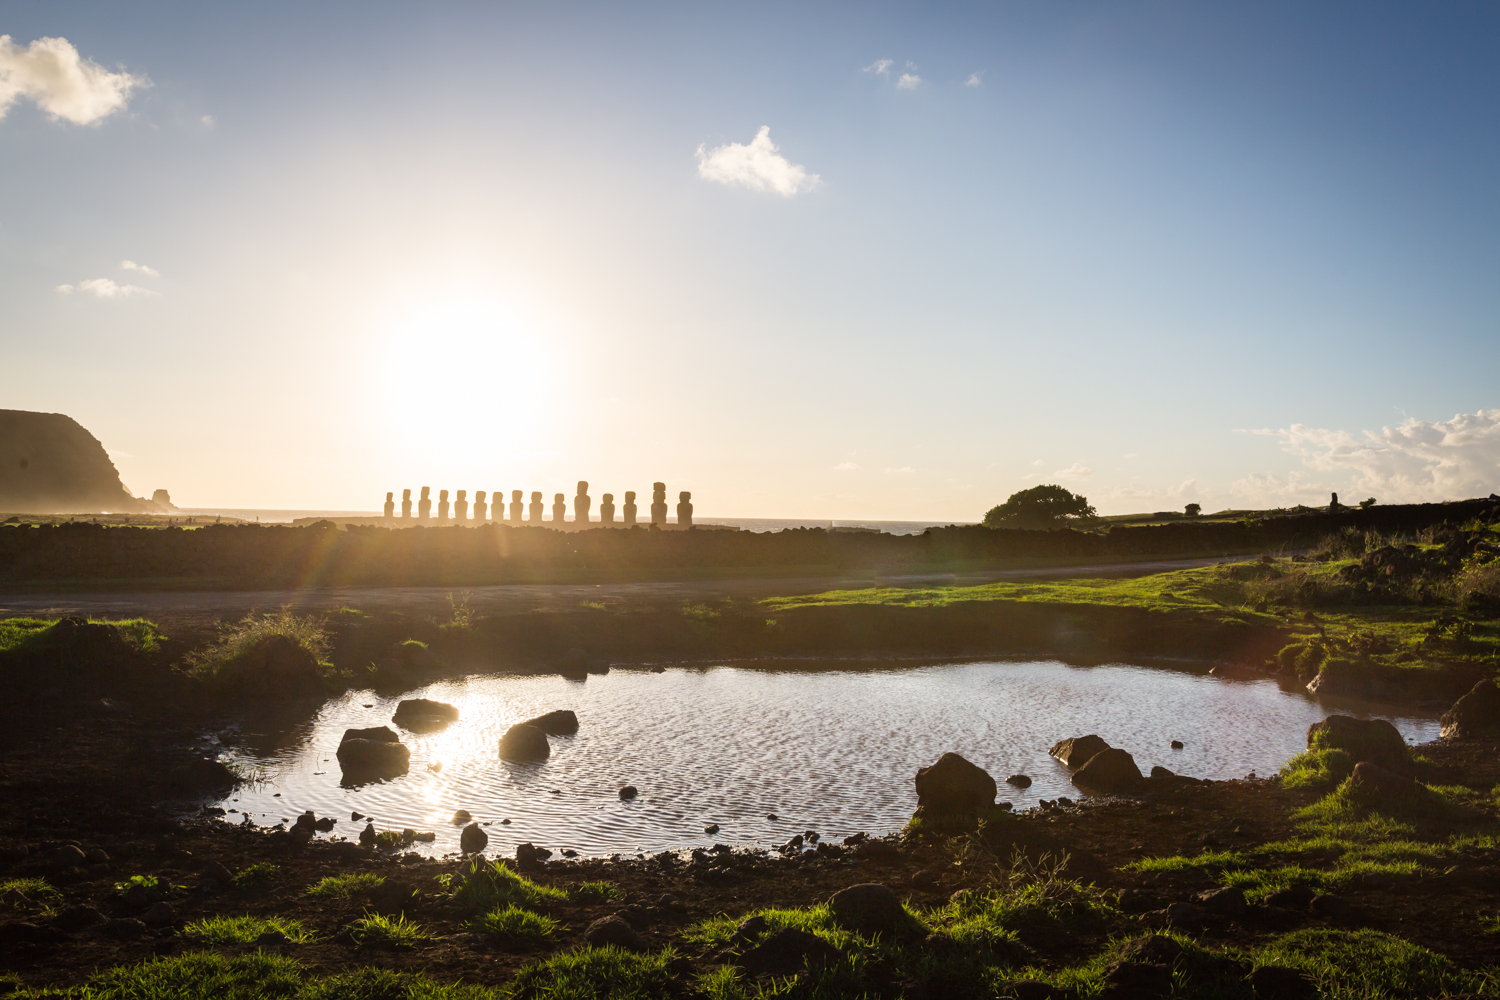 Easter Island moai heads at sunrise by NYC photojournalist, Kelly Williams